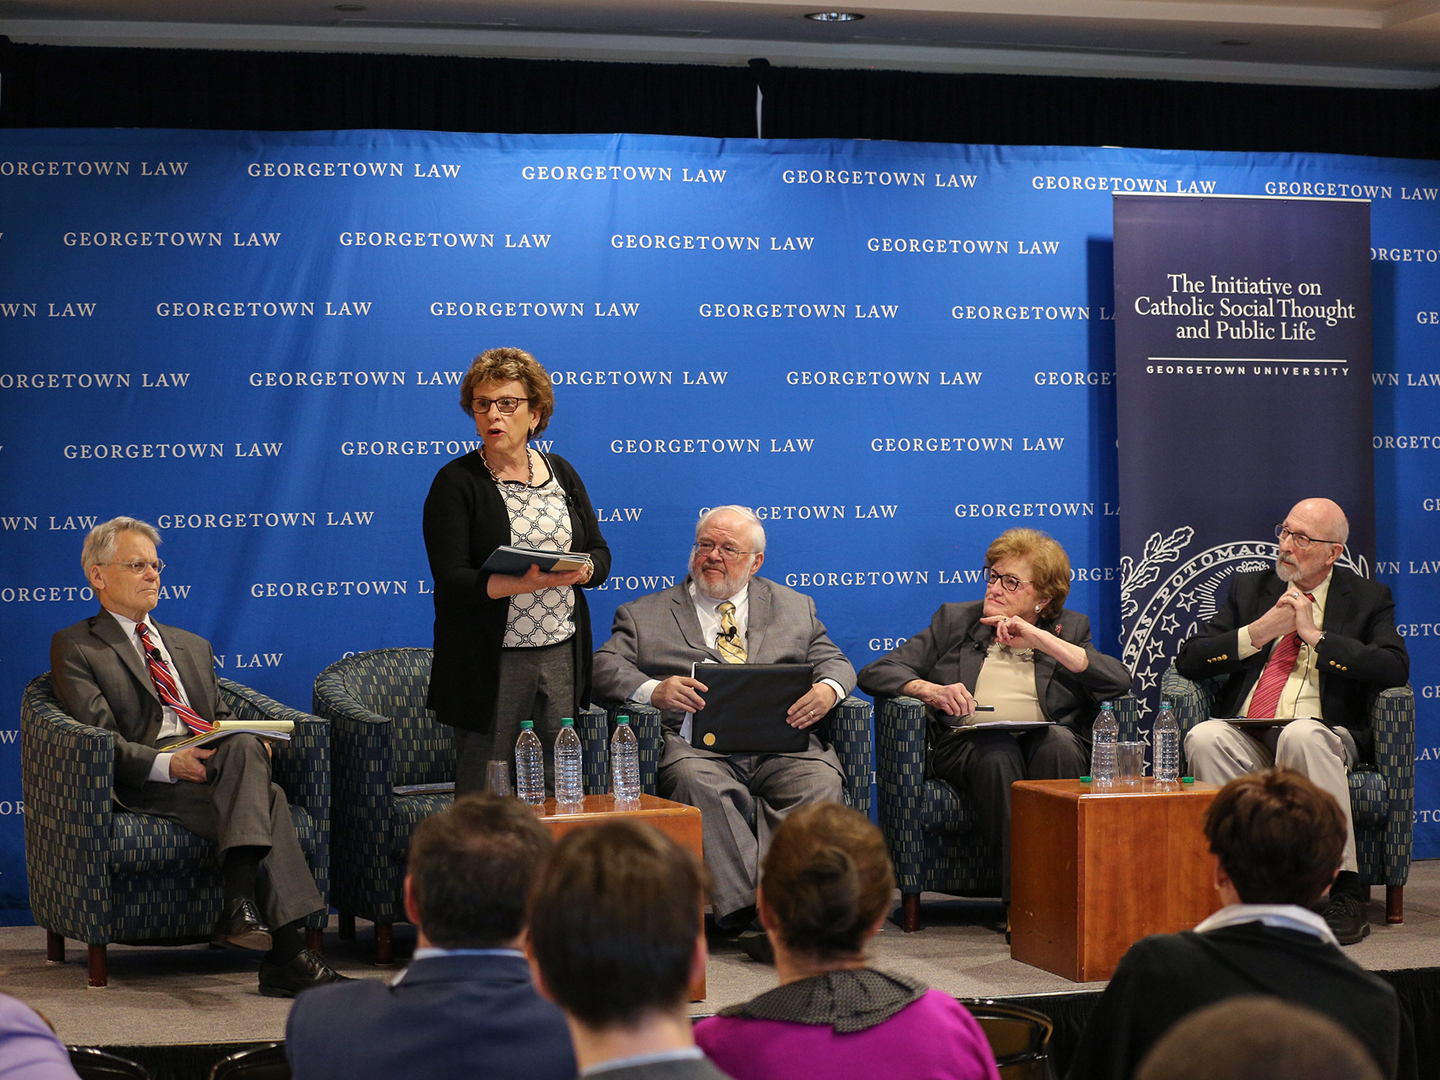 Barbara Thorp and other panelists at April 9, 2019 Public Dialogue at Georgetown Law